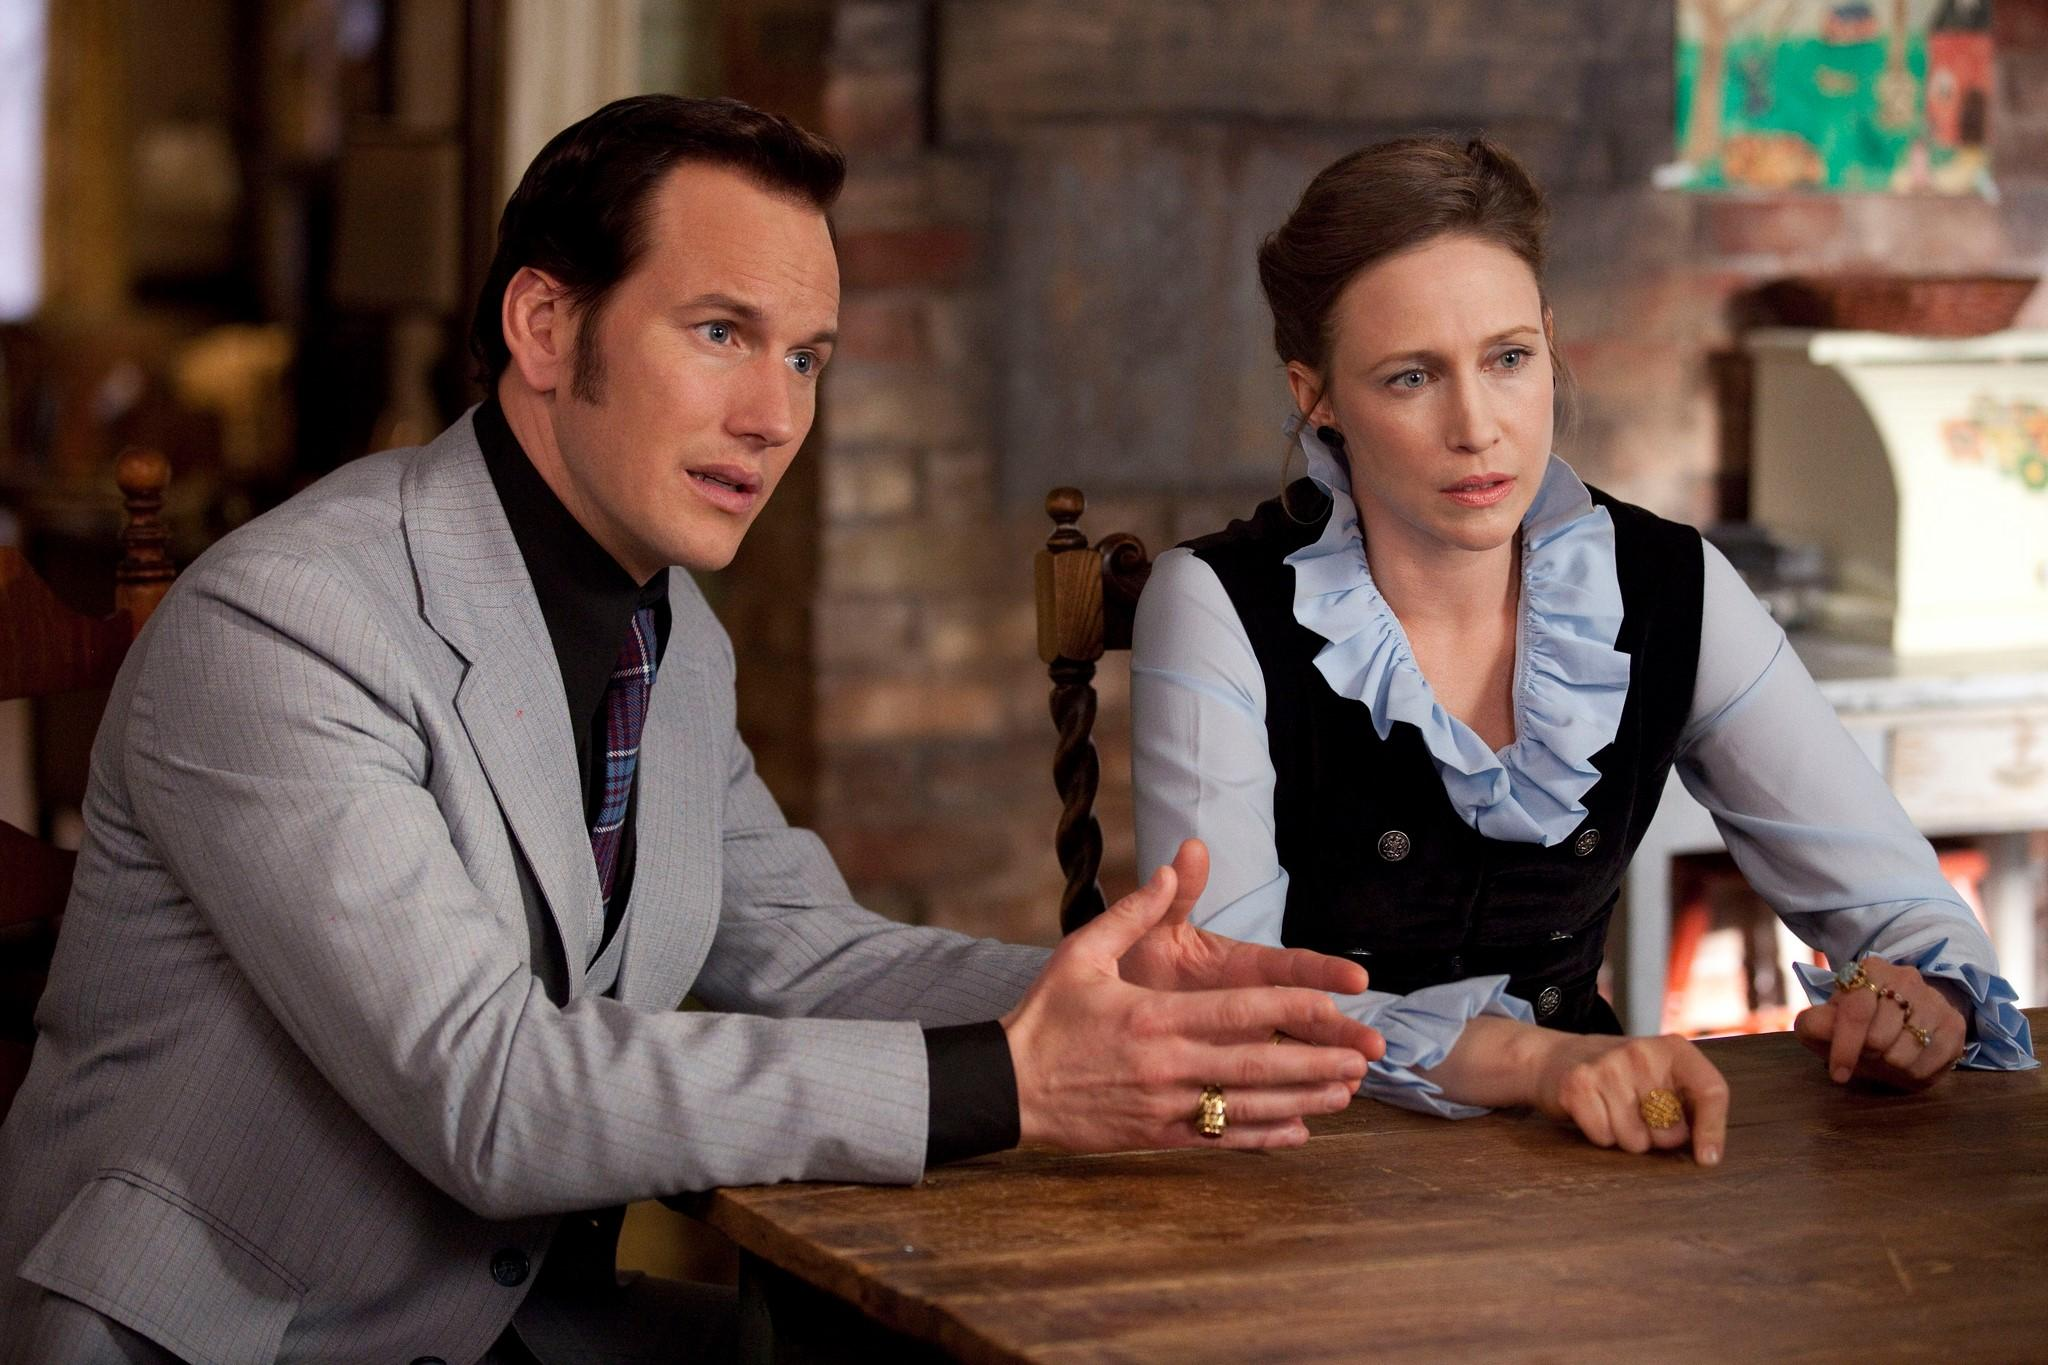 11. The Conjuring: The Devil Made Me Do It